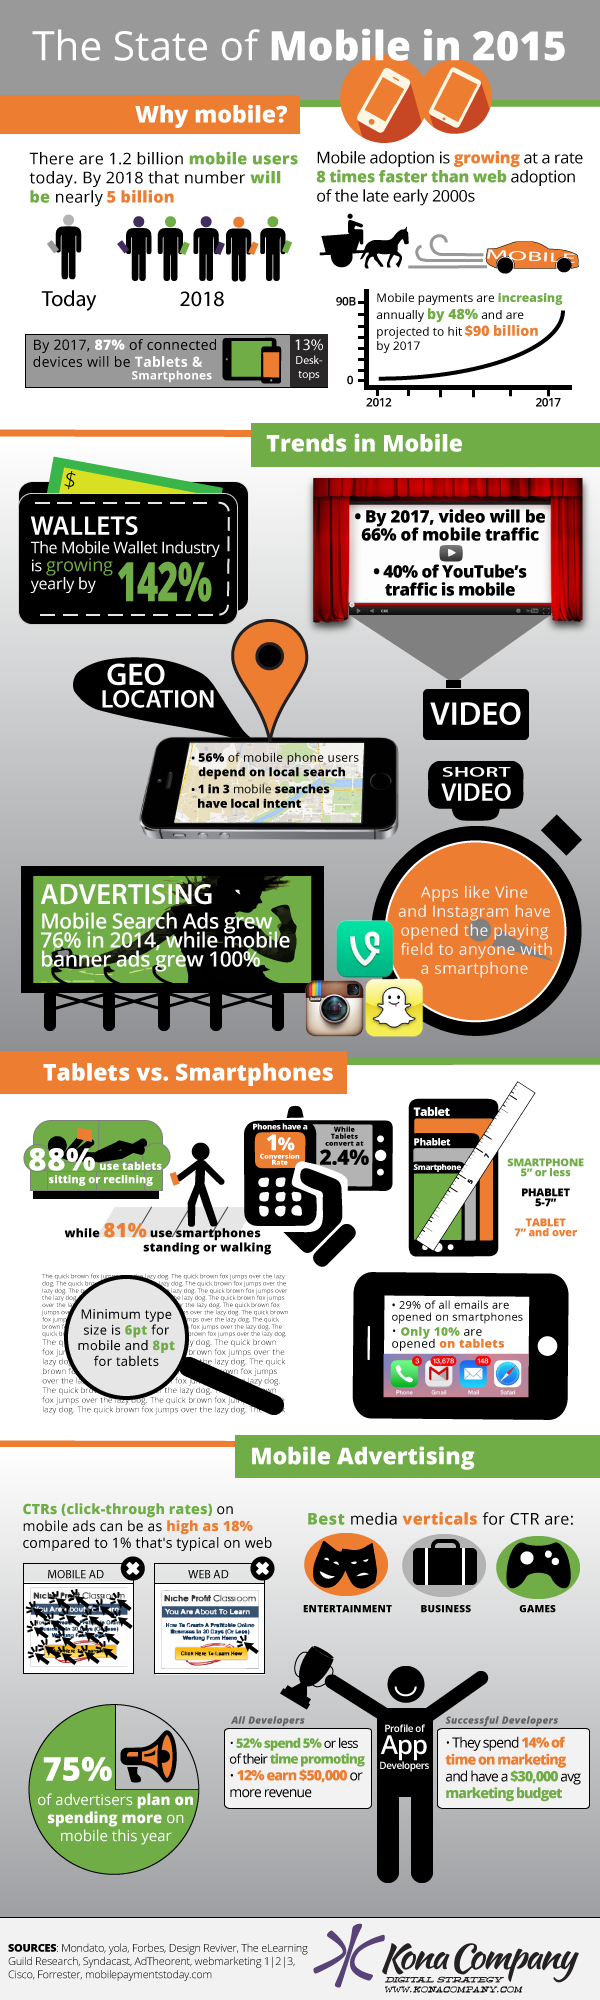 The State of Mobile in 2015